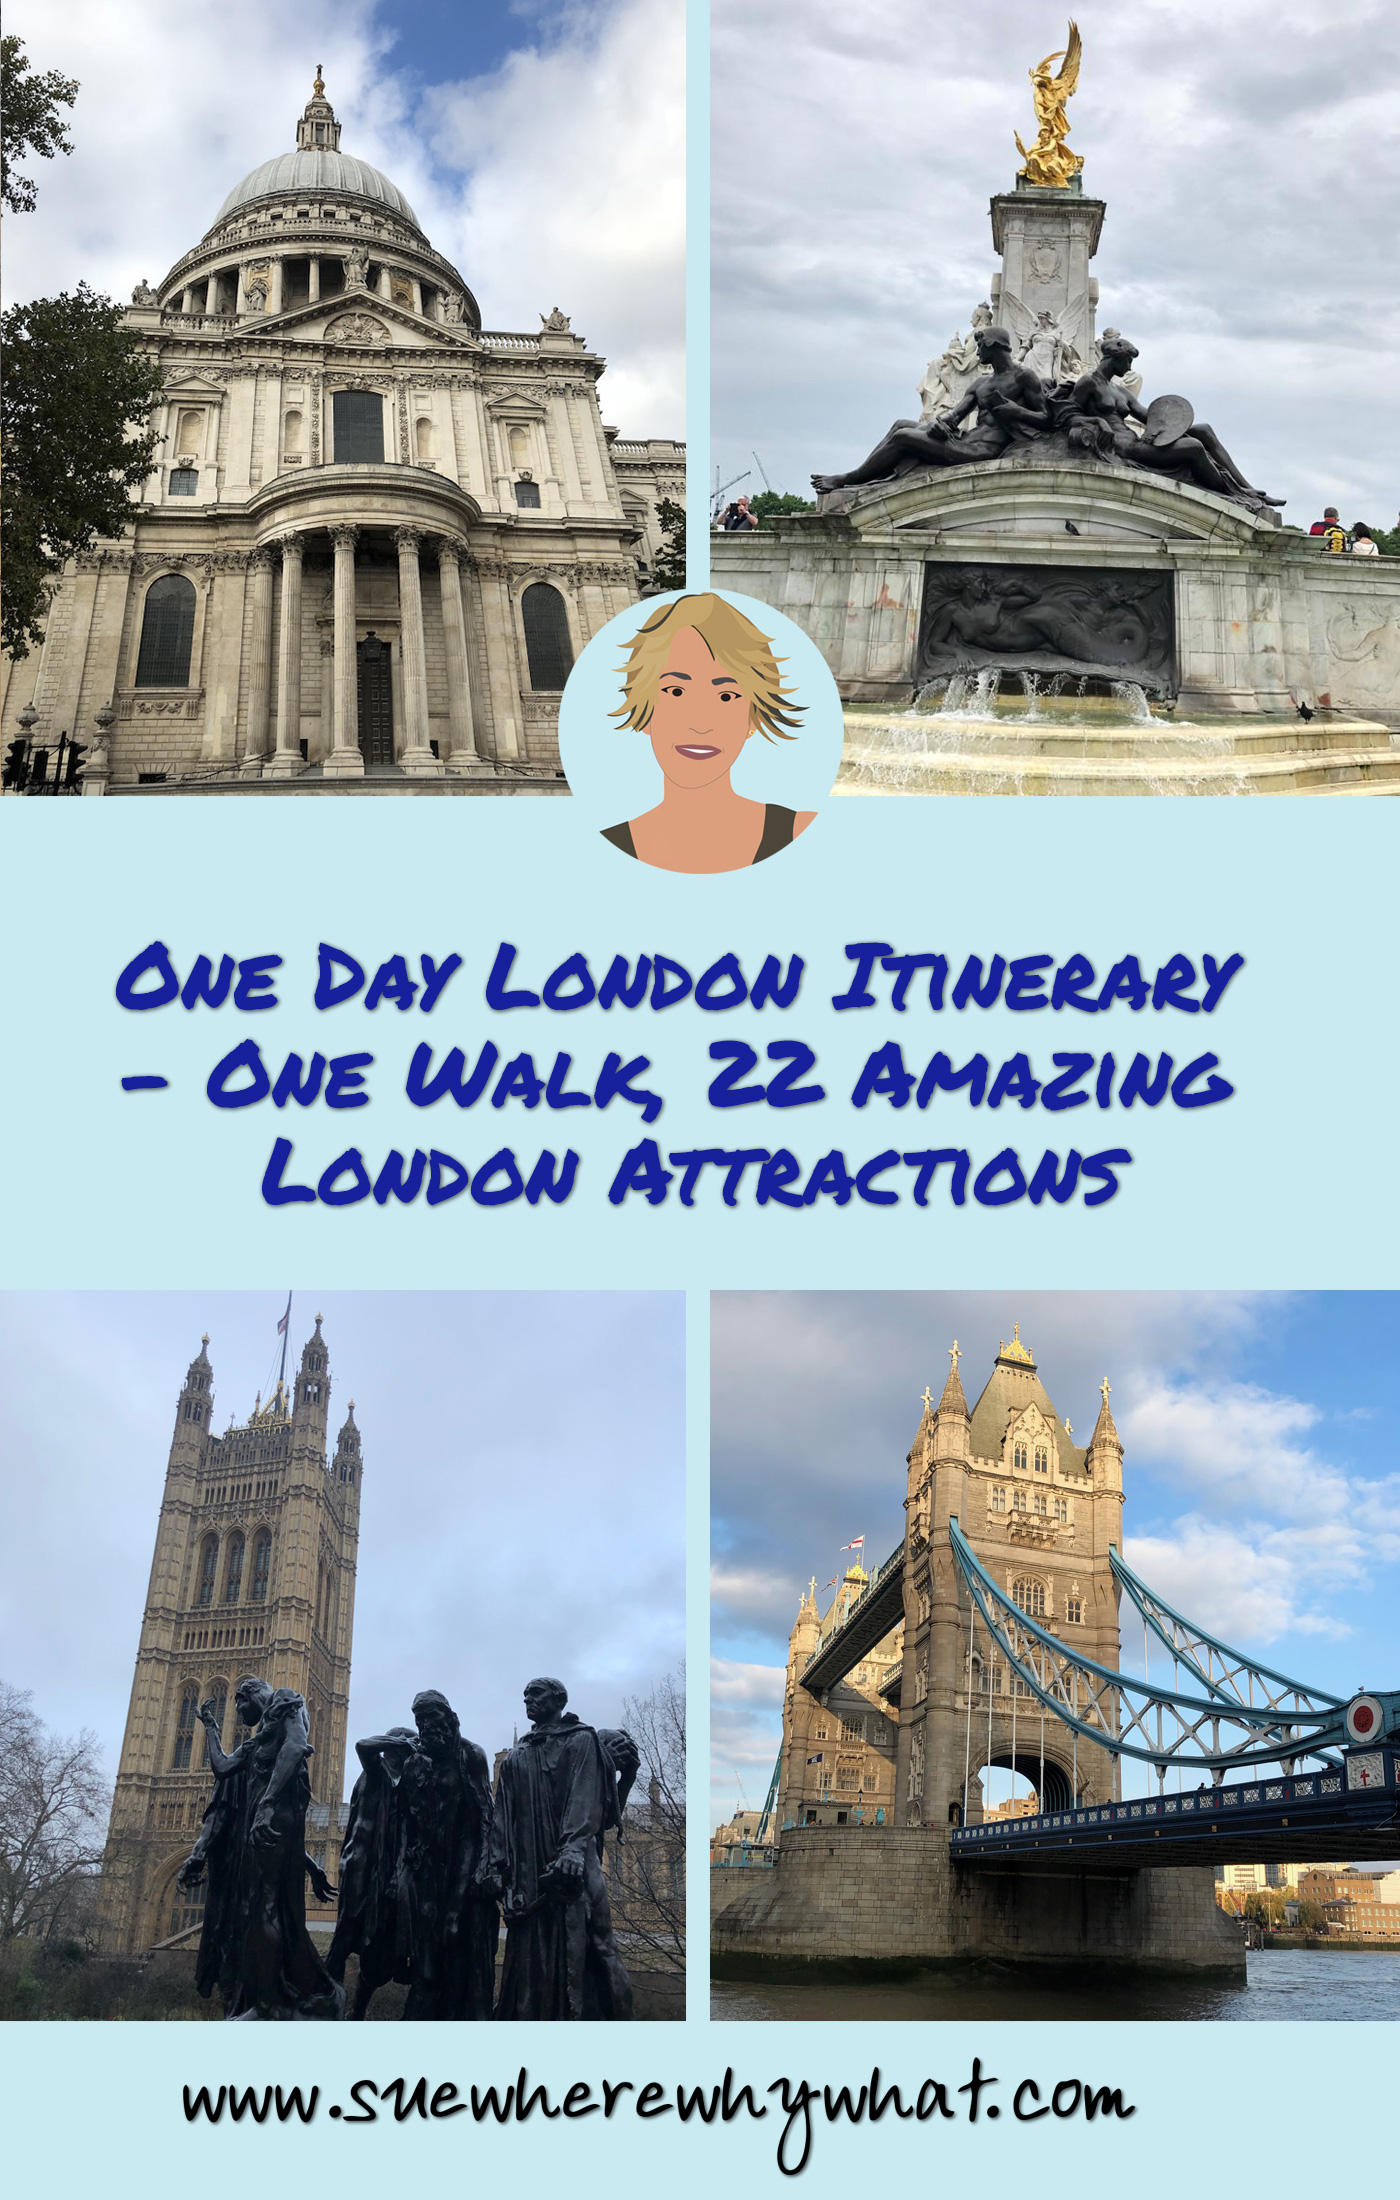 One Day London Itinerary – One Walk, 22 Amazing London Attractions